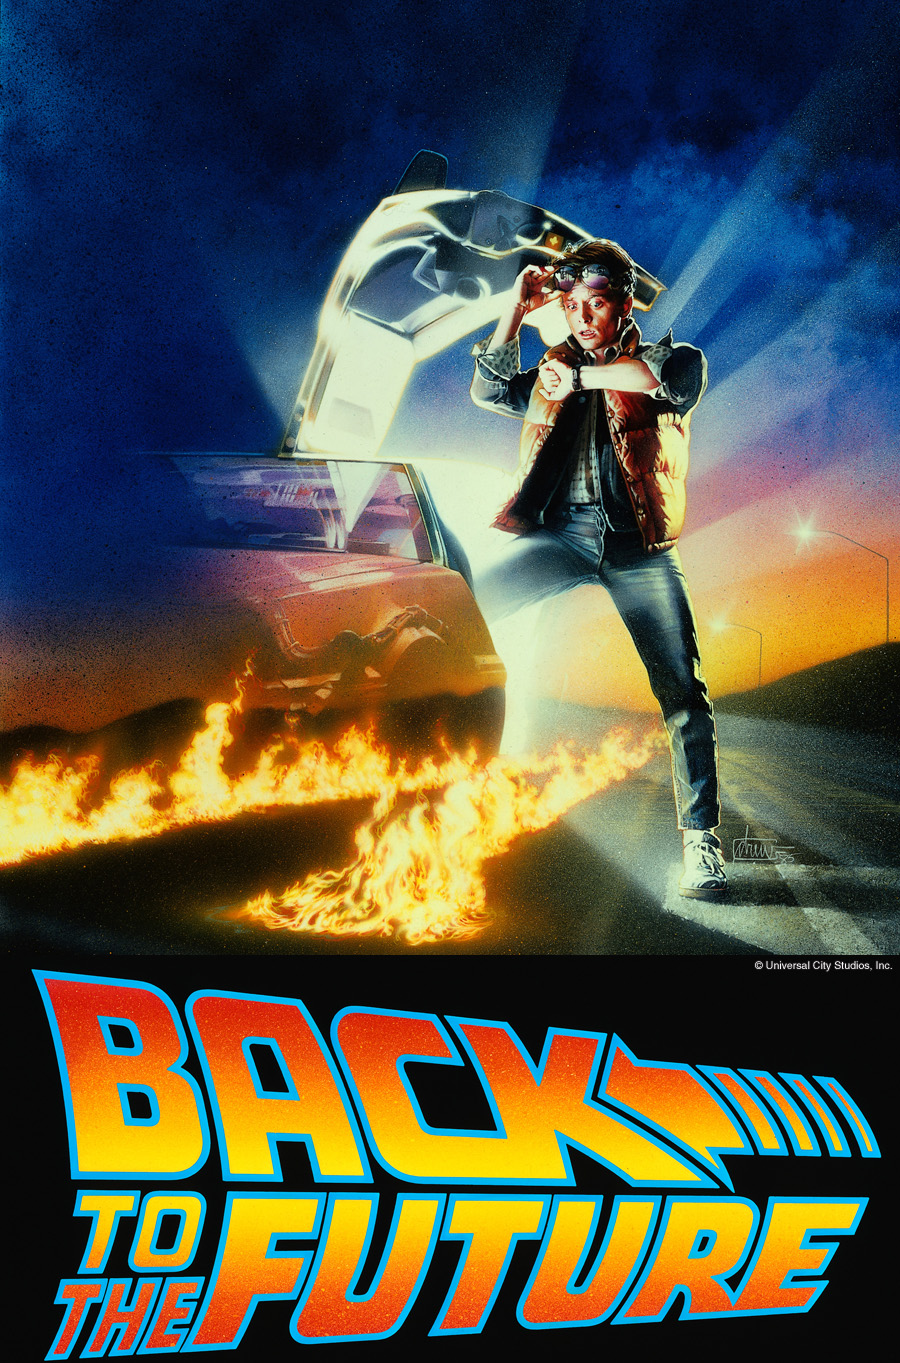 back-to-the-future-poster.jpg